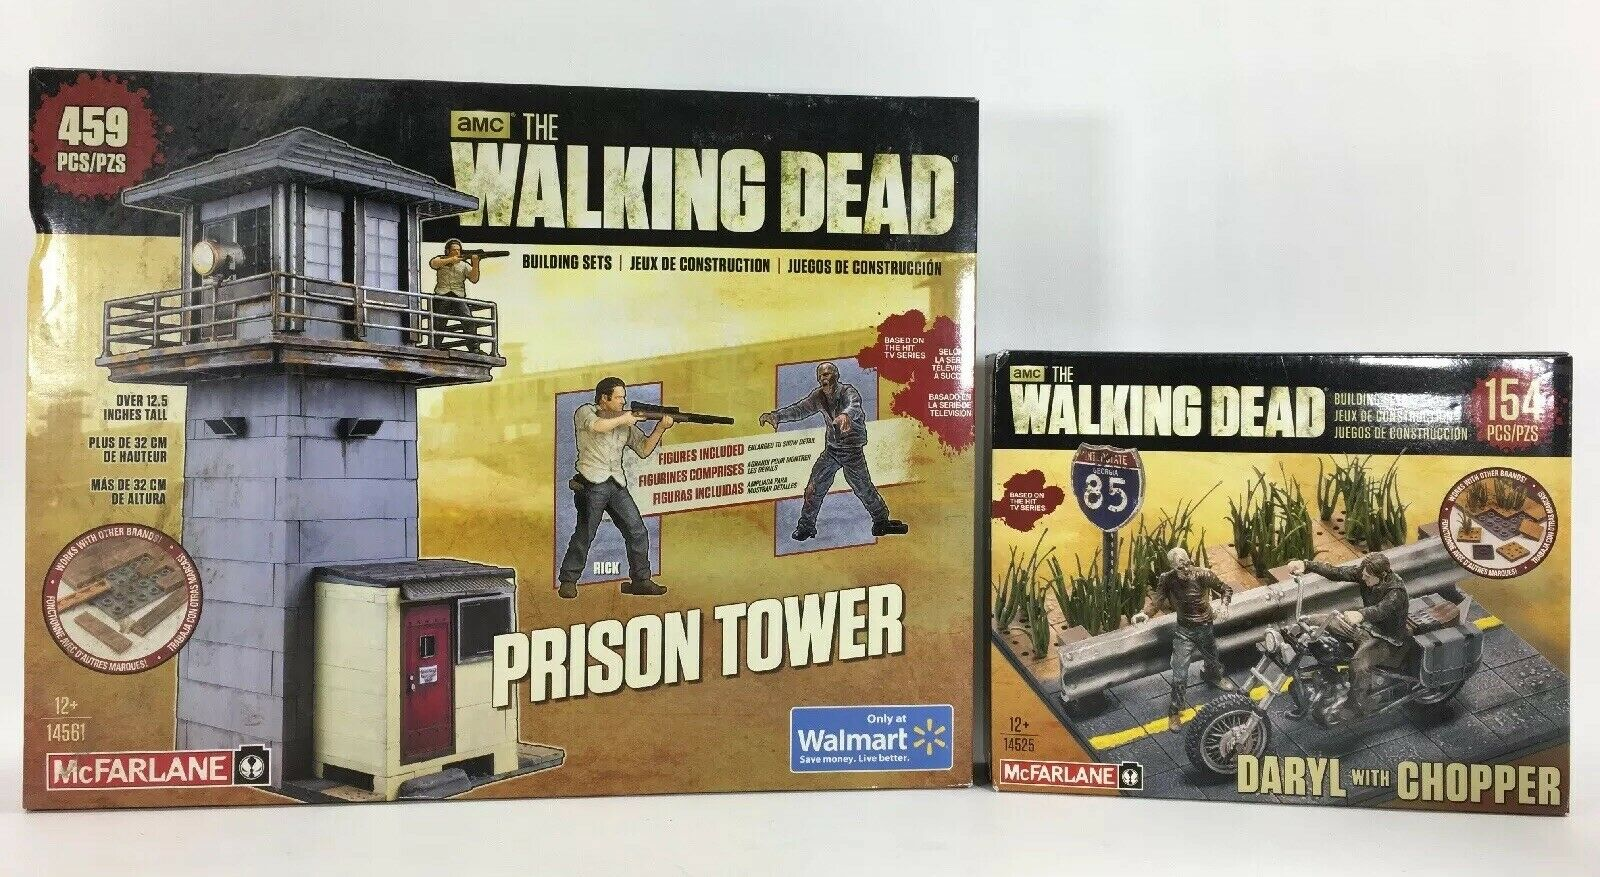 McFarlane AMC The Walking Dead Building Sets 14561 Prison Tower Daryl w  Chopper